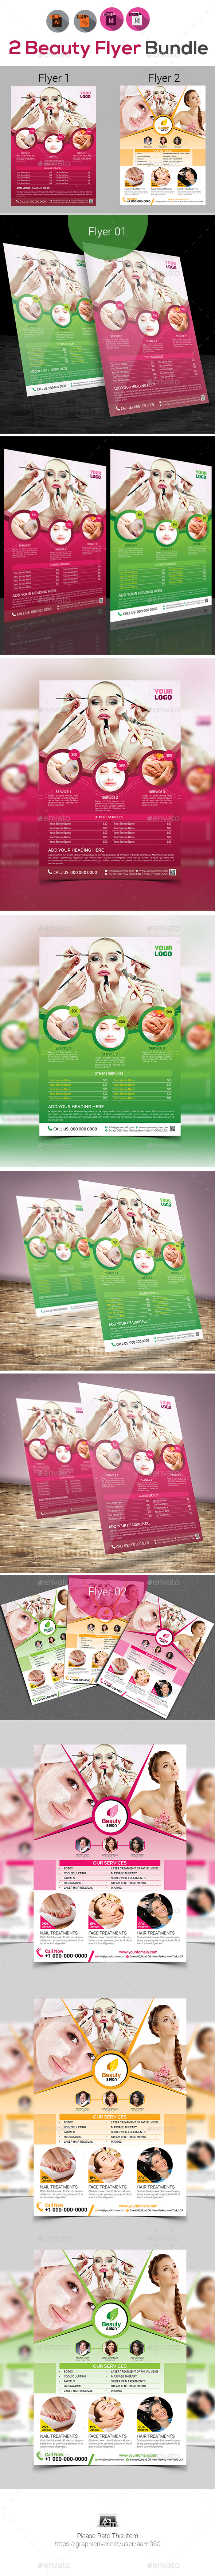 Beauty & Spa Flyers Templates - Corporate Flyers